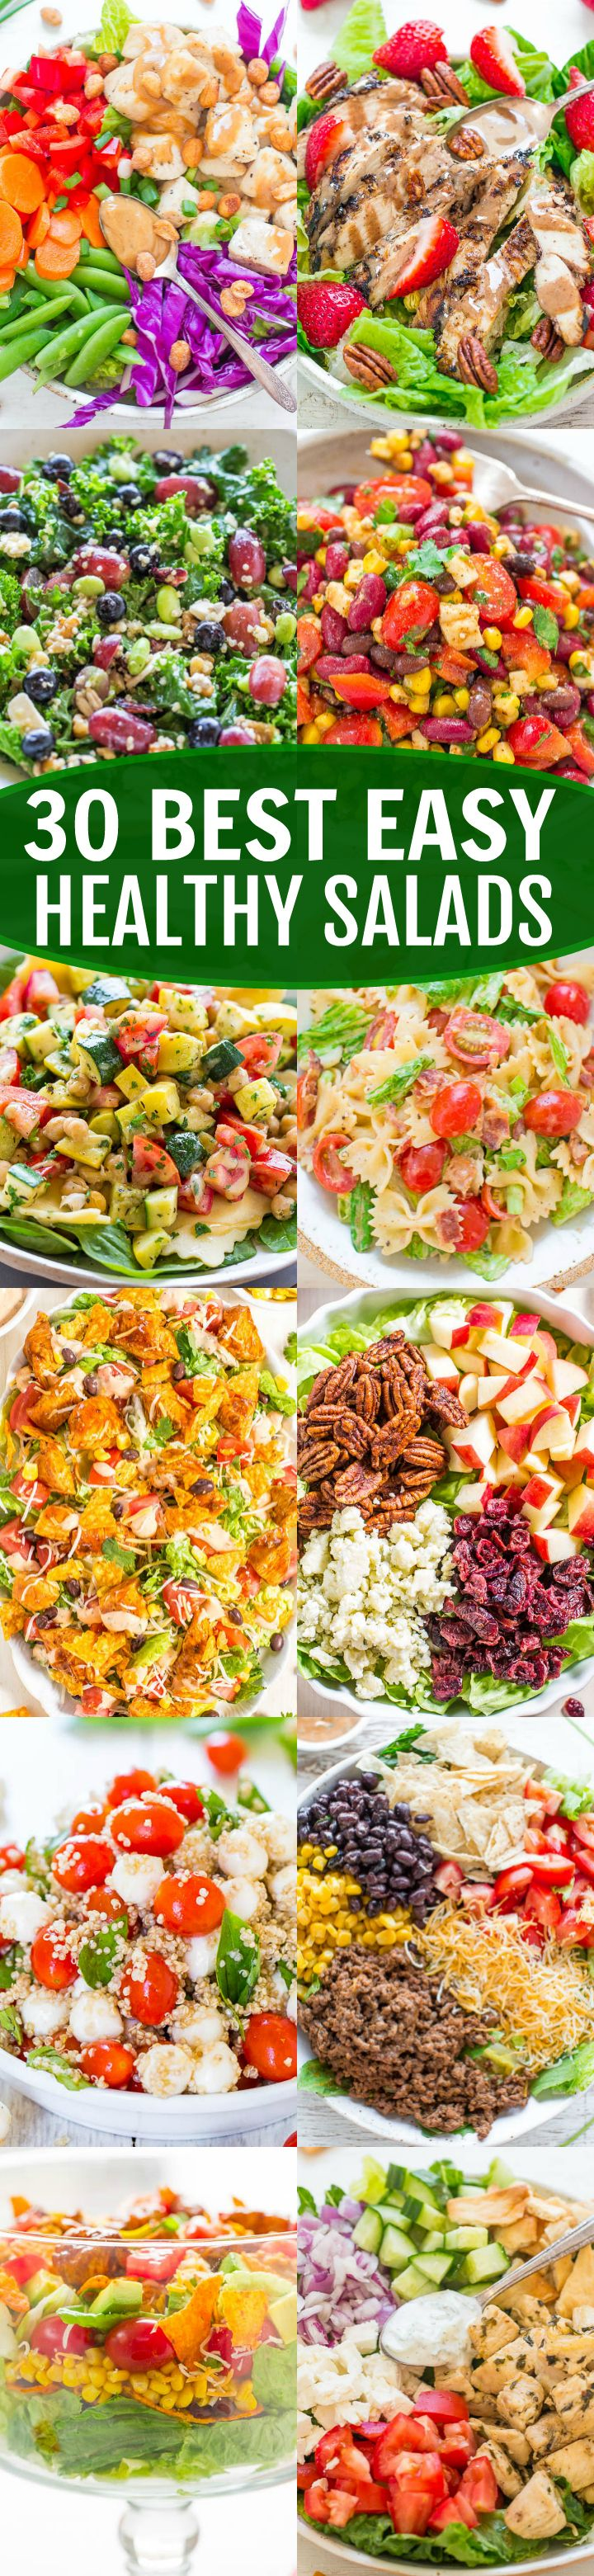 30 Best Easy  Healthy Salads - Break out of your salad rut with these AMAZING  salads!! Fast, EASY, and FLAVORFUL!! You'll want to put them into your regular rotation!!